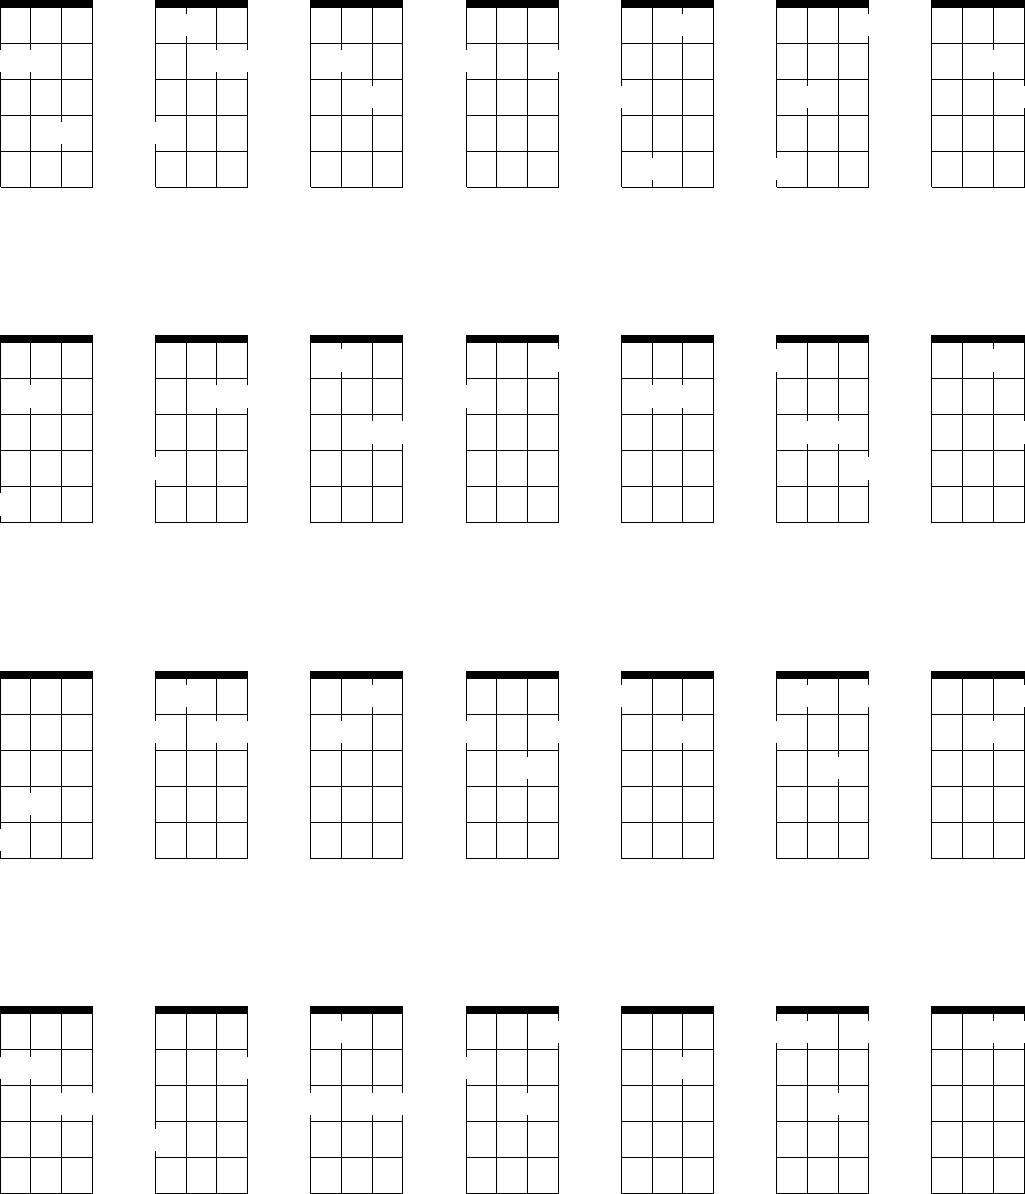 image regarding Mandolin Chord Charts Printable known as Free of charge Mandolin Chord Chart - PDF 11KB 1 Web page(s)